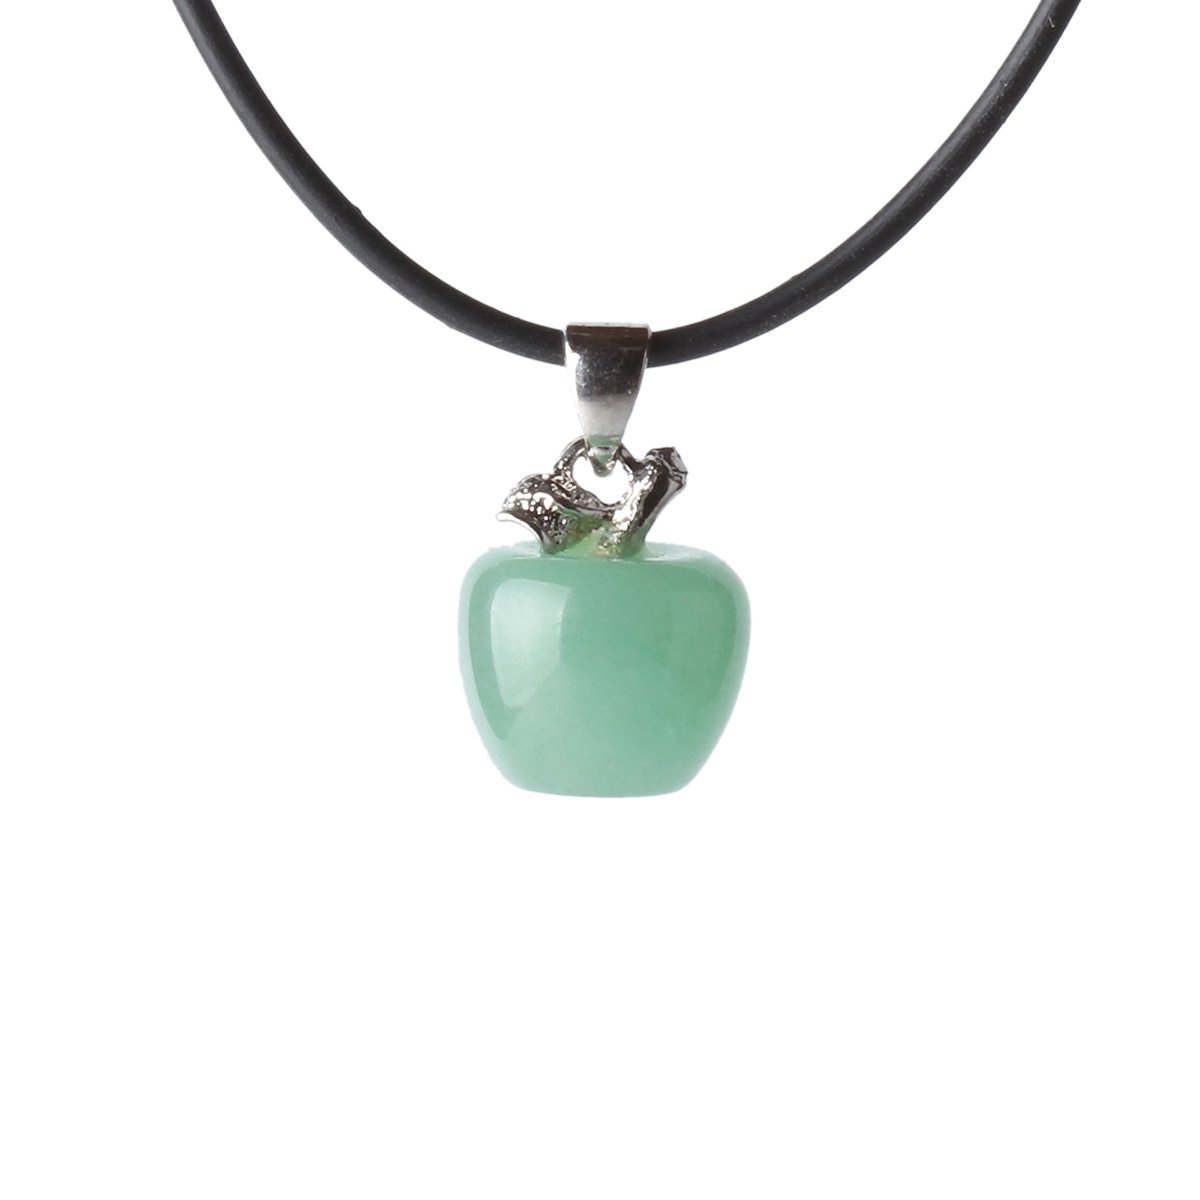 Matt Hann Apple Pendant Original Handmade Grouding Stone The Wet Brush Gemstone Teal Agate Protection Green B Jewelry